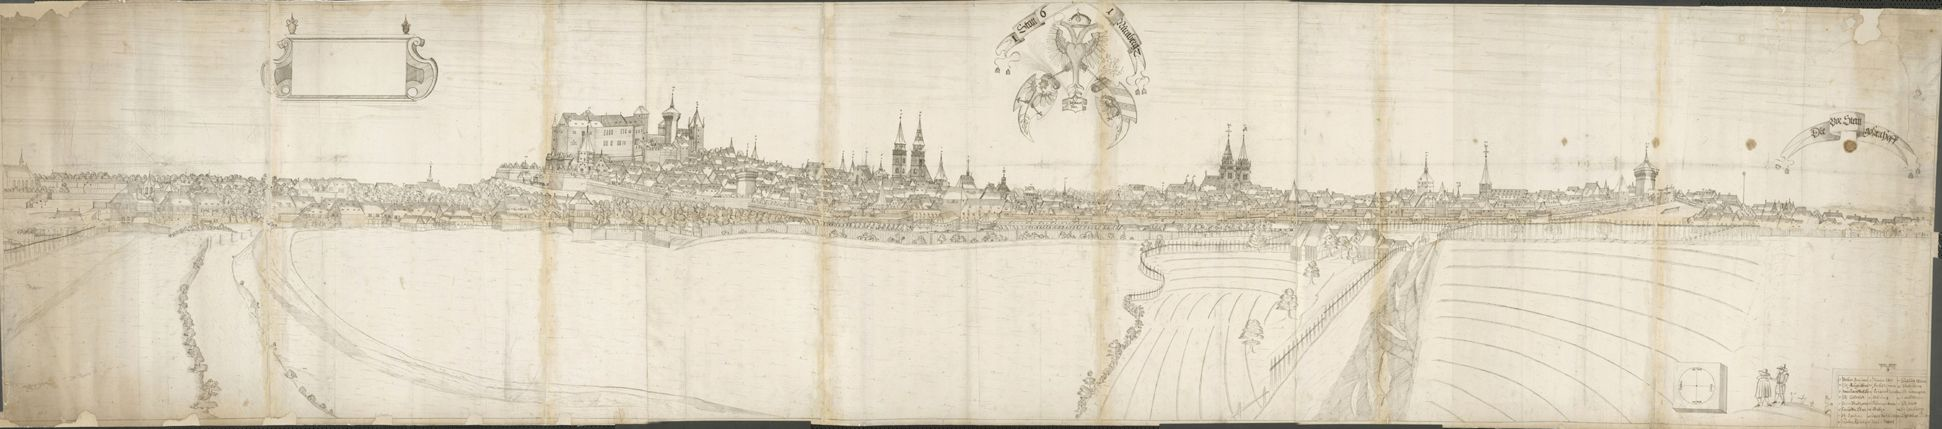 Panoramic view of the City of Nuremberg as seen from the west Total drawing consisting of several paper sheets